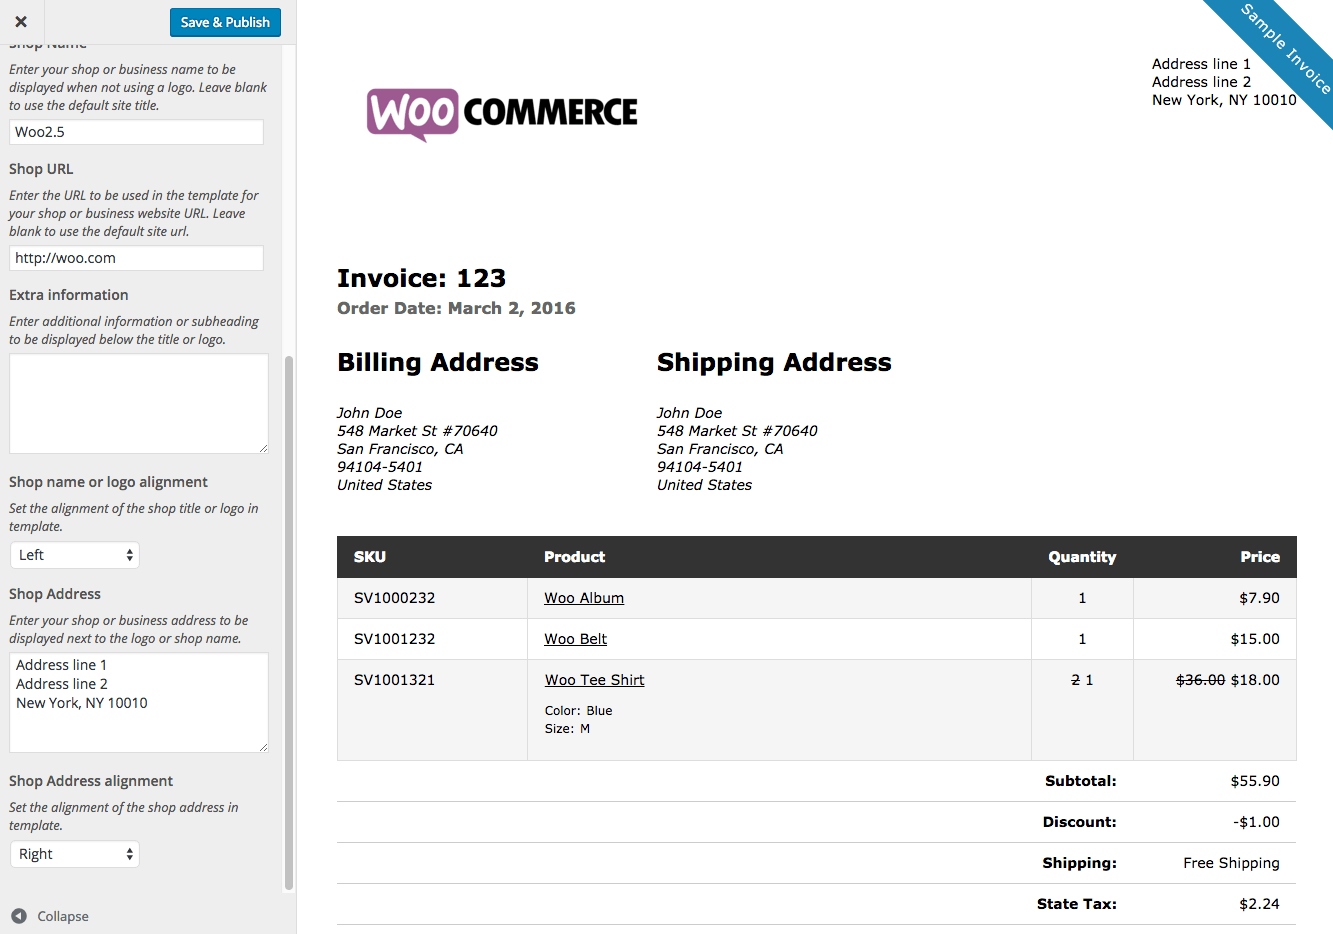 Modaoxus  Seductive Woocommerce Print Invoices Amp Packing Lists  Woocommerce Docs With Goodlooking Woocommerce Print Invoices  Packing Lists Customizer With Lovely Invoice Sample Download Also Pro Forma Invoices And Vat In Addition Invoice Not Paid And Billing Invoicing Software As Well As Free Invoicing And Accounting Software Additionally Free Invoice Word Template From Docswoocommercecom With Modaoxus  Goodlooking Woocommerce Print Invoices Amp Packing Lists  Woocommerce Docs With Lovely Woocommerce Print Invoices  Packing Lists Customizer And Seductive Invoice Sample Download Also Pro Forma Invoices And Vat In Addition Invoice Not Paid From Docswoocommercecom